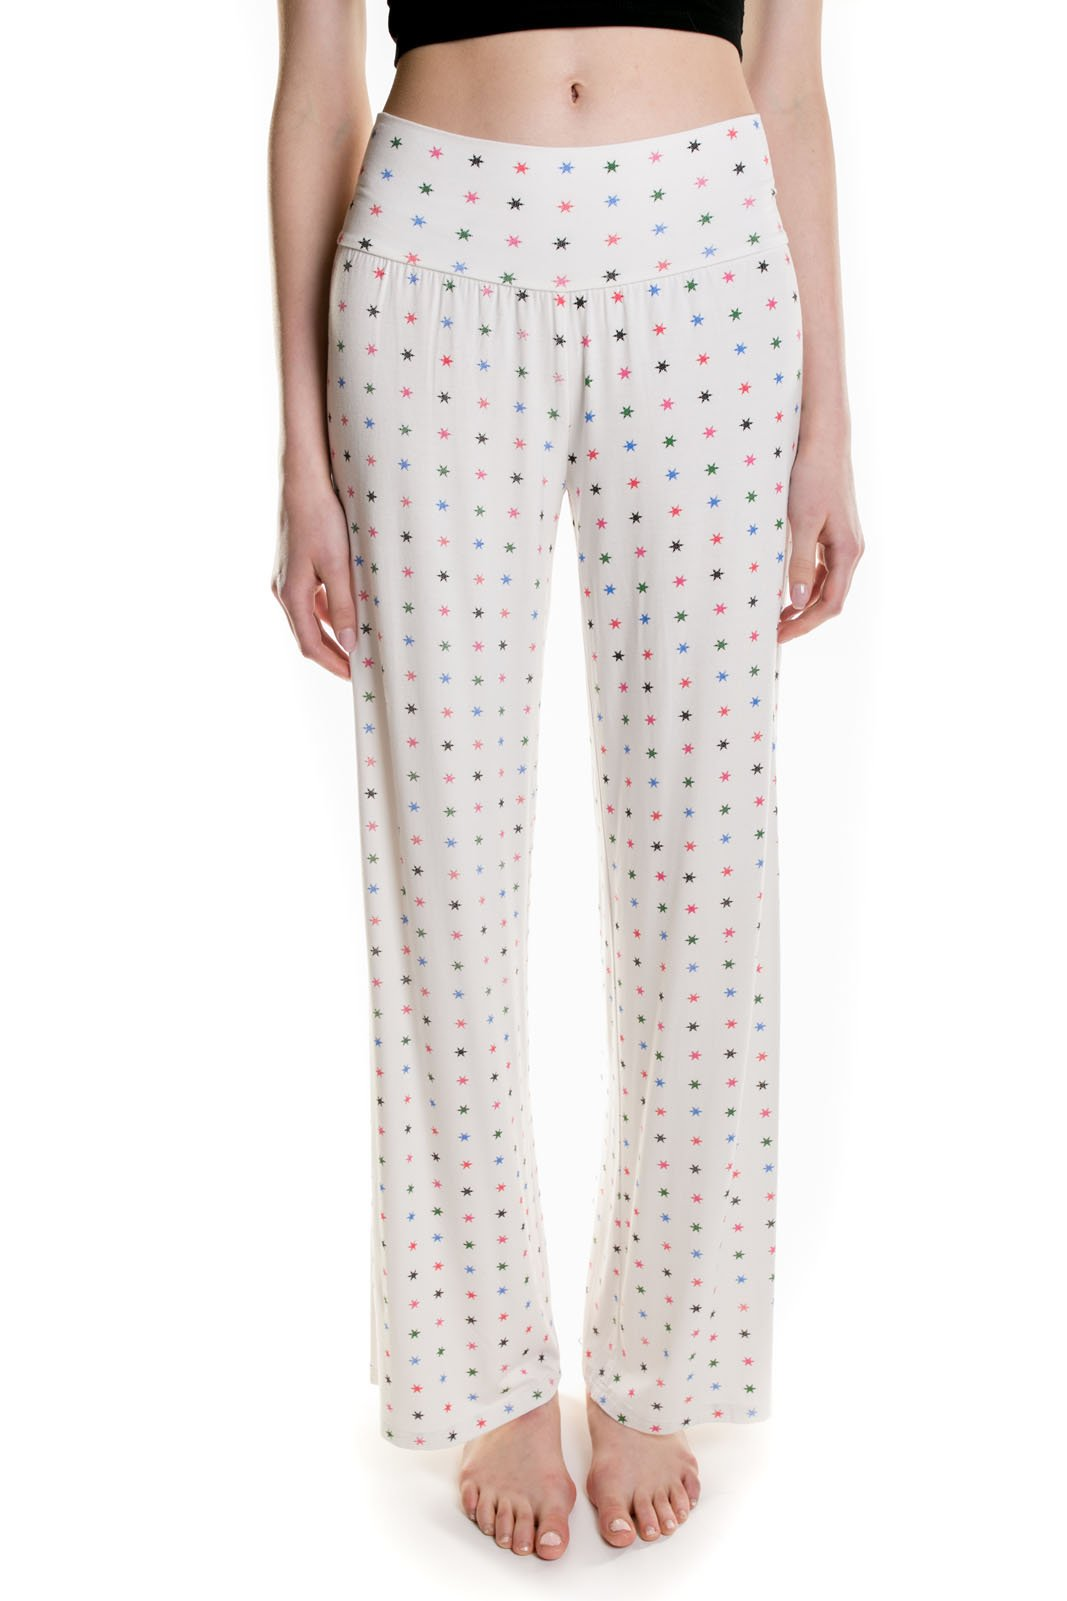 Women's Pajama Bottoms By Orb